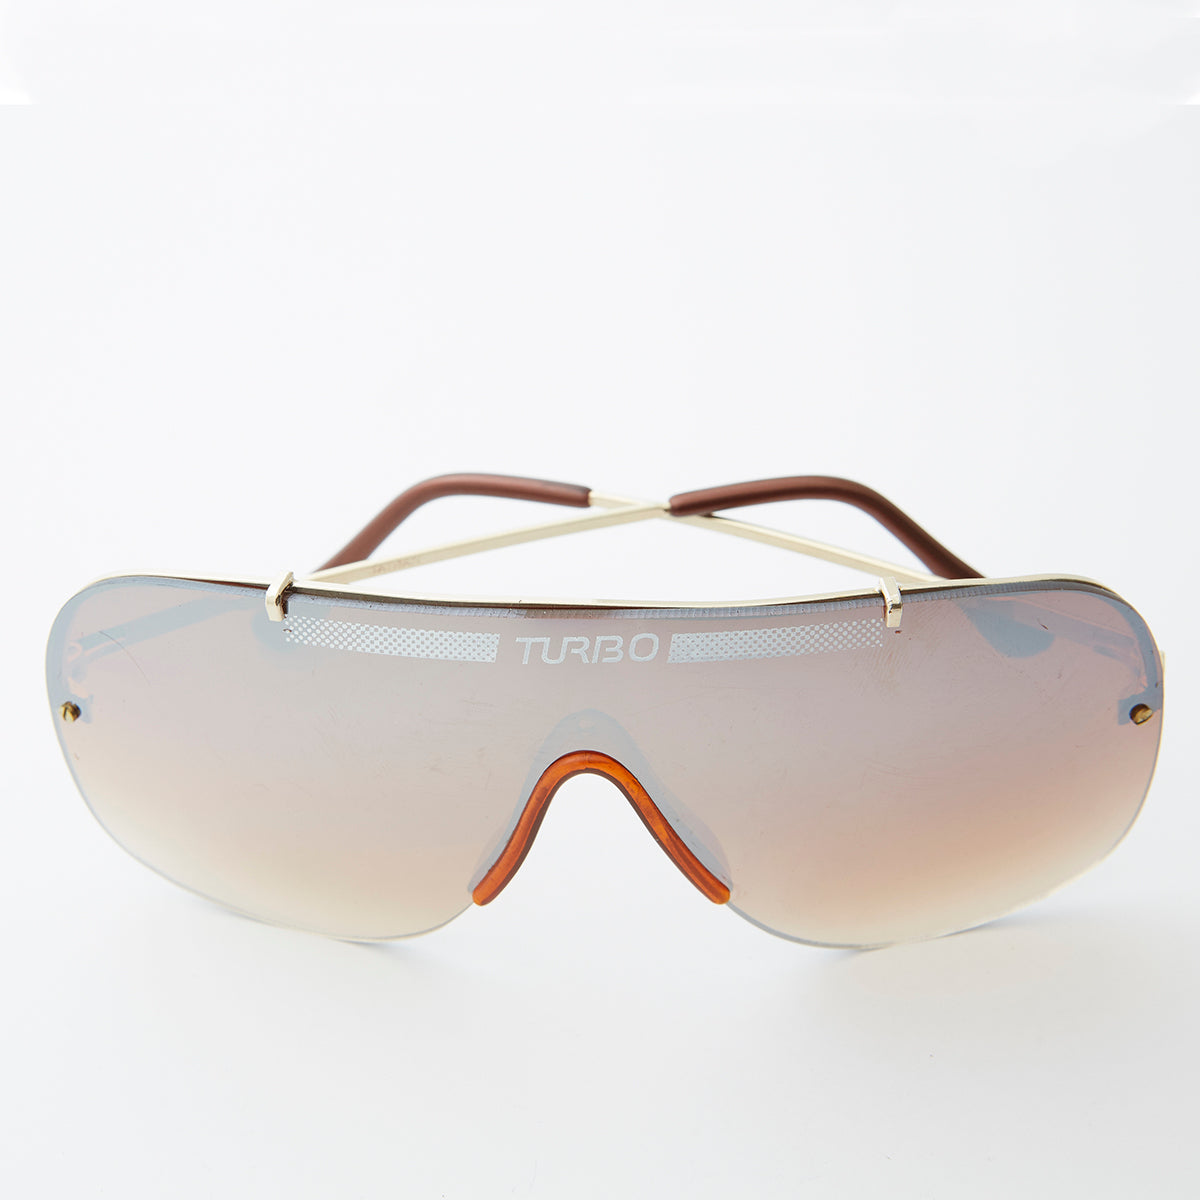 80s One Piece Aviator with Reflective Lens and Rimless Frame